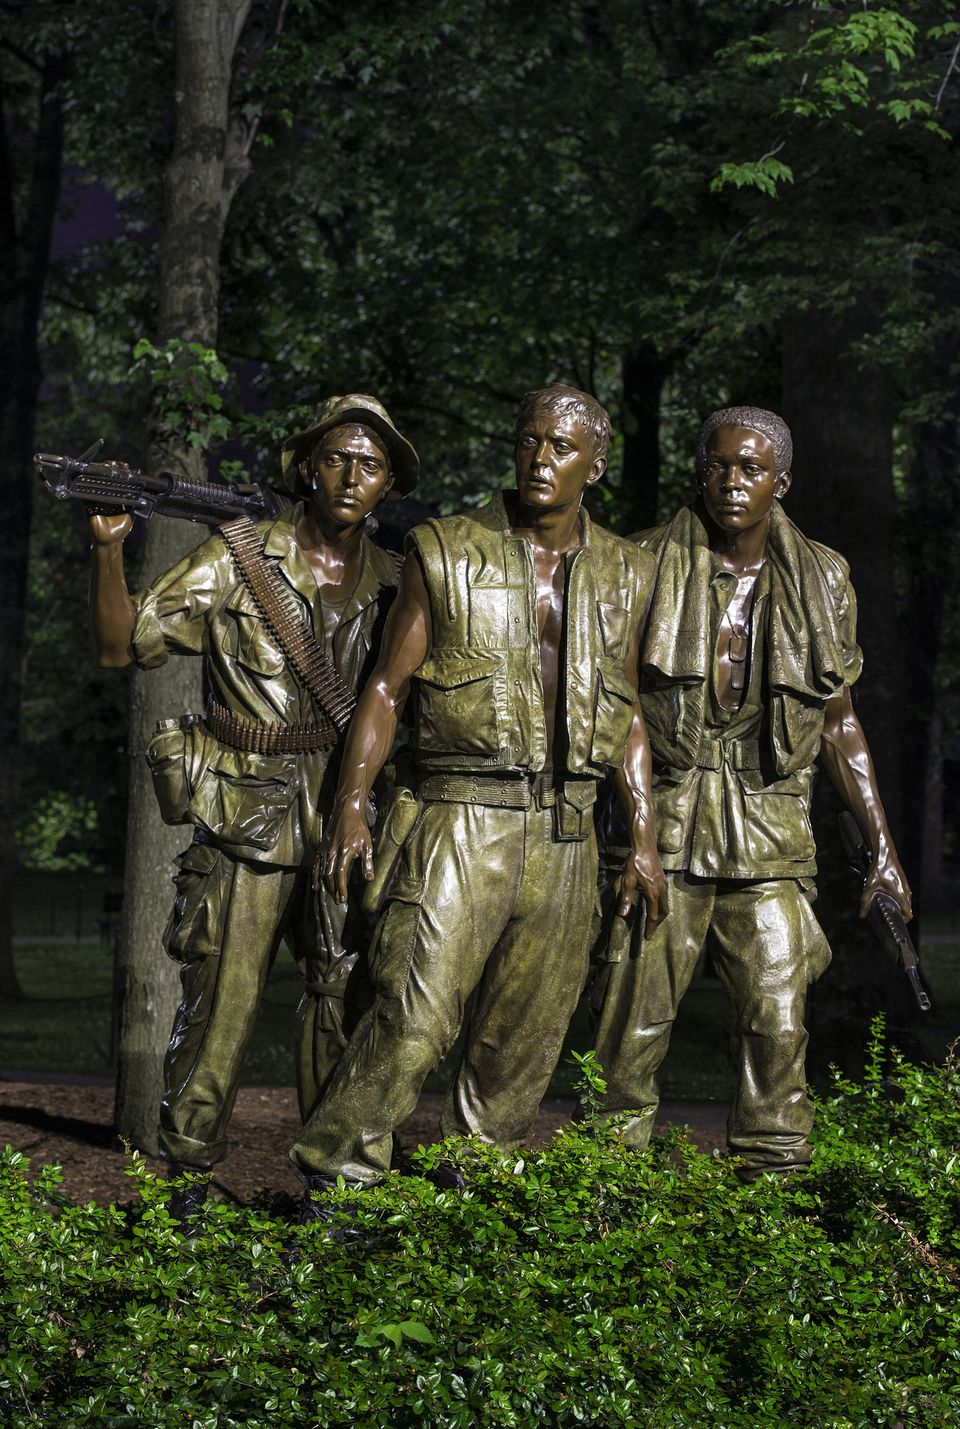 The Three Soldiers Sculpture at the Vietnam Veterans Memorial in Washington DC The Three Soldiers sculpture at the Vietnam Veterans Memorial in Washington DC.